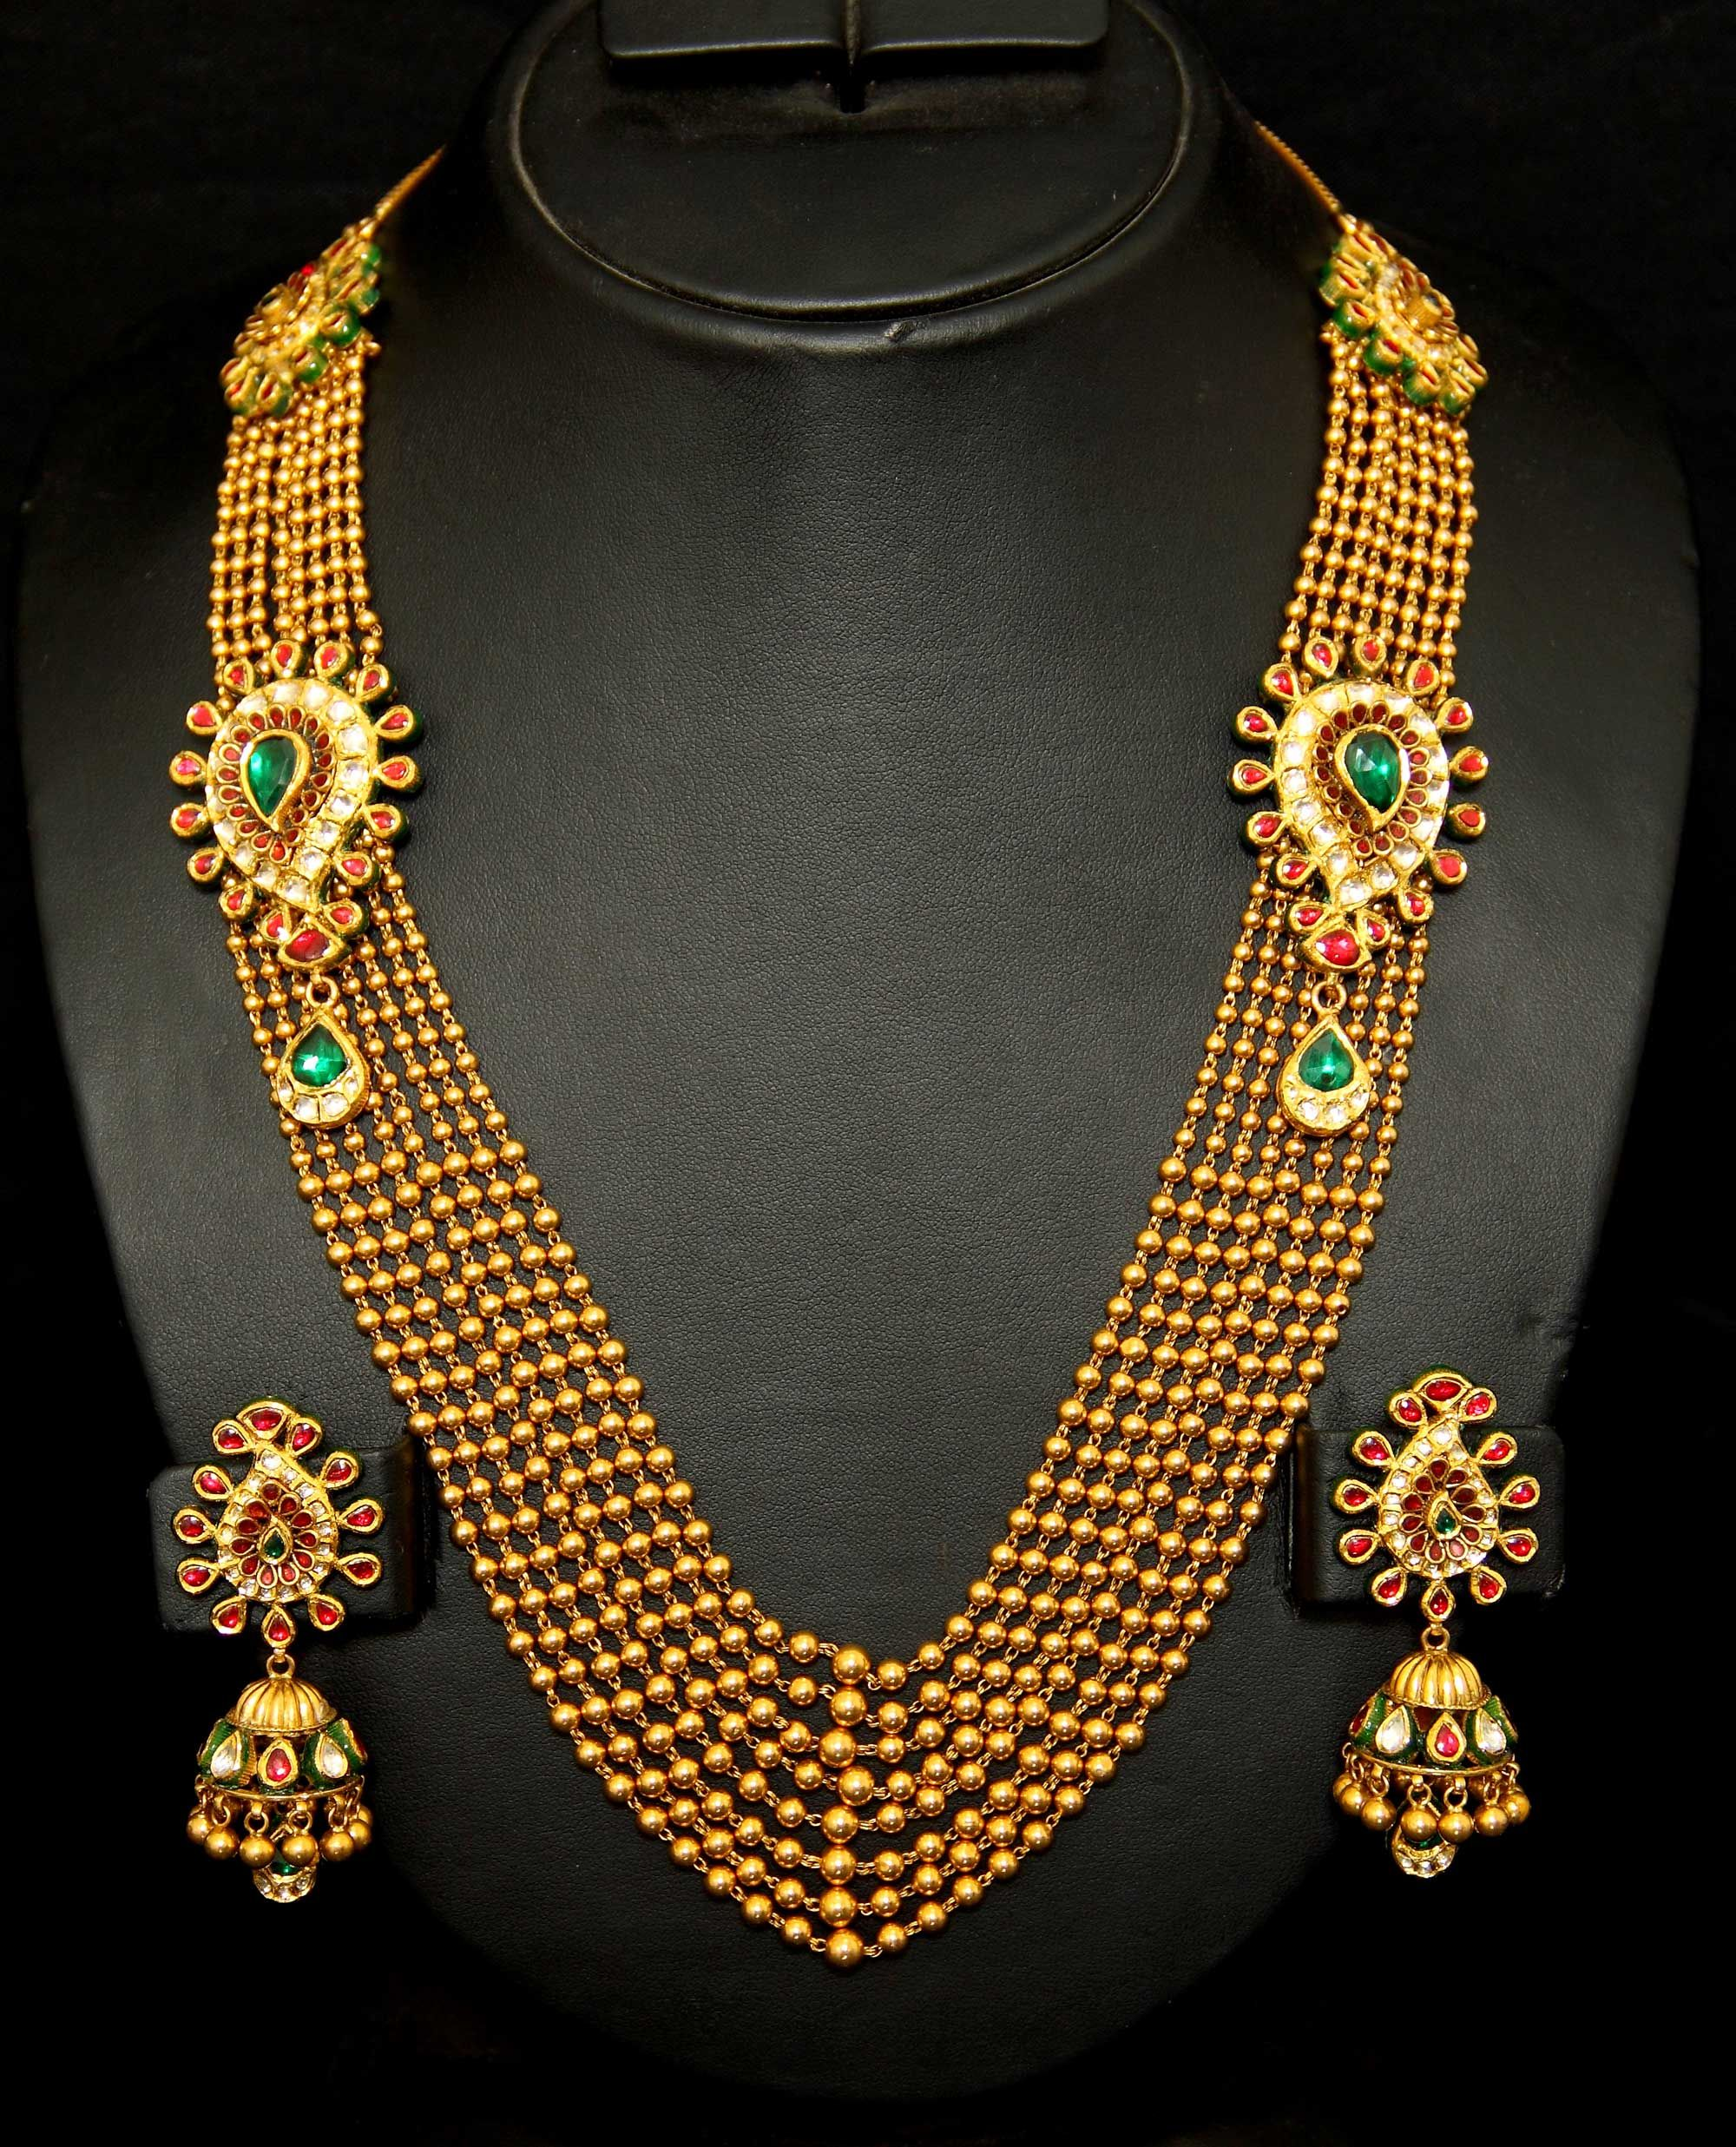 Indian Gold Jewellery Necklace Sets Google Search: 22caratjewellery - Google Search